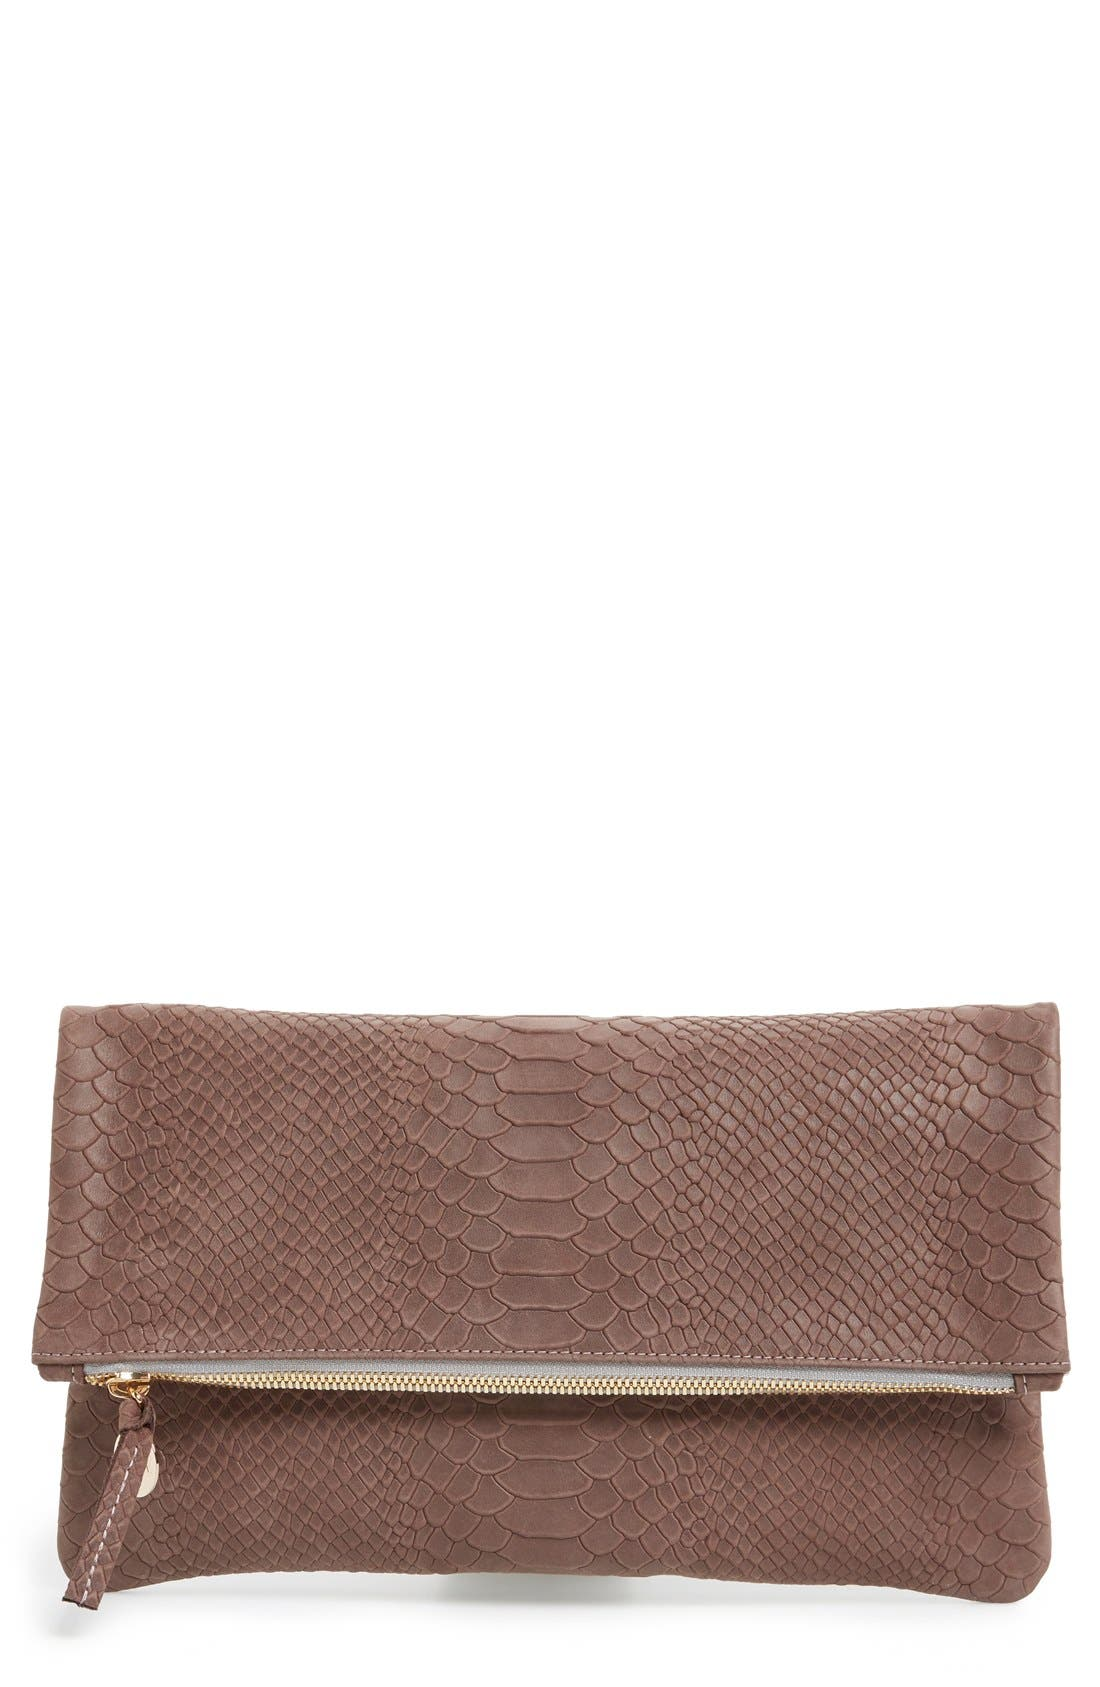 Snake Embossed Leather Foldover Clutch,                         Main,                         color, Taupe Snake Nubuck